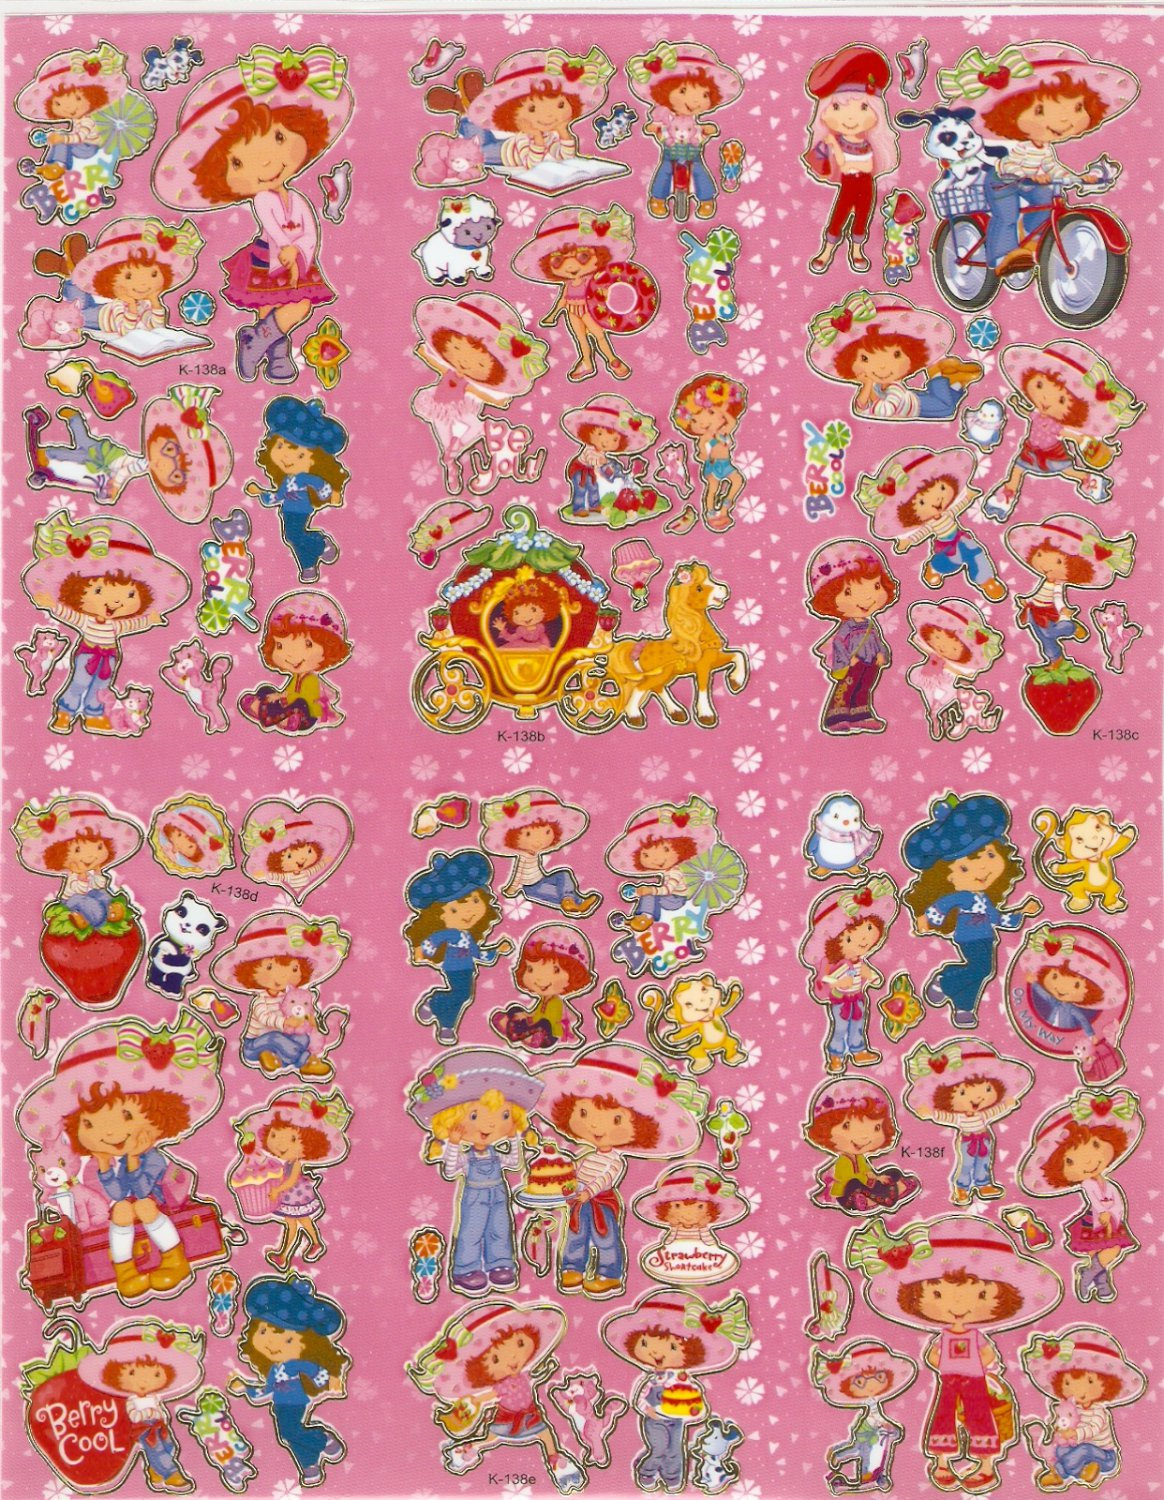 10 Big sheets Strawberry Shortcake Sticker Buy 2 lots Bonus 1#K138